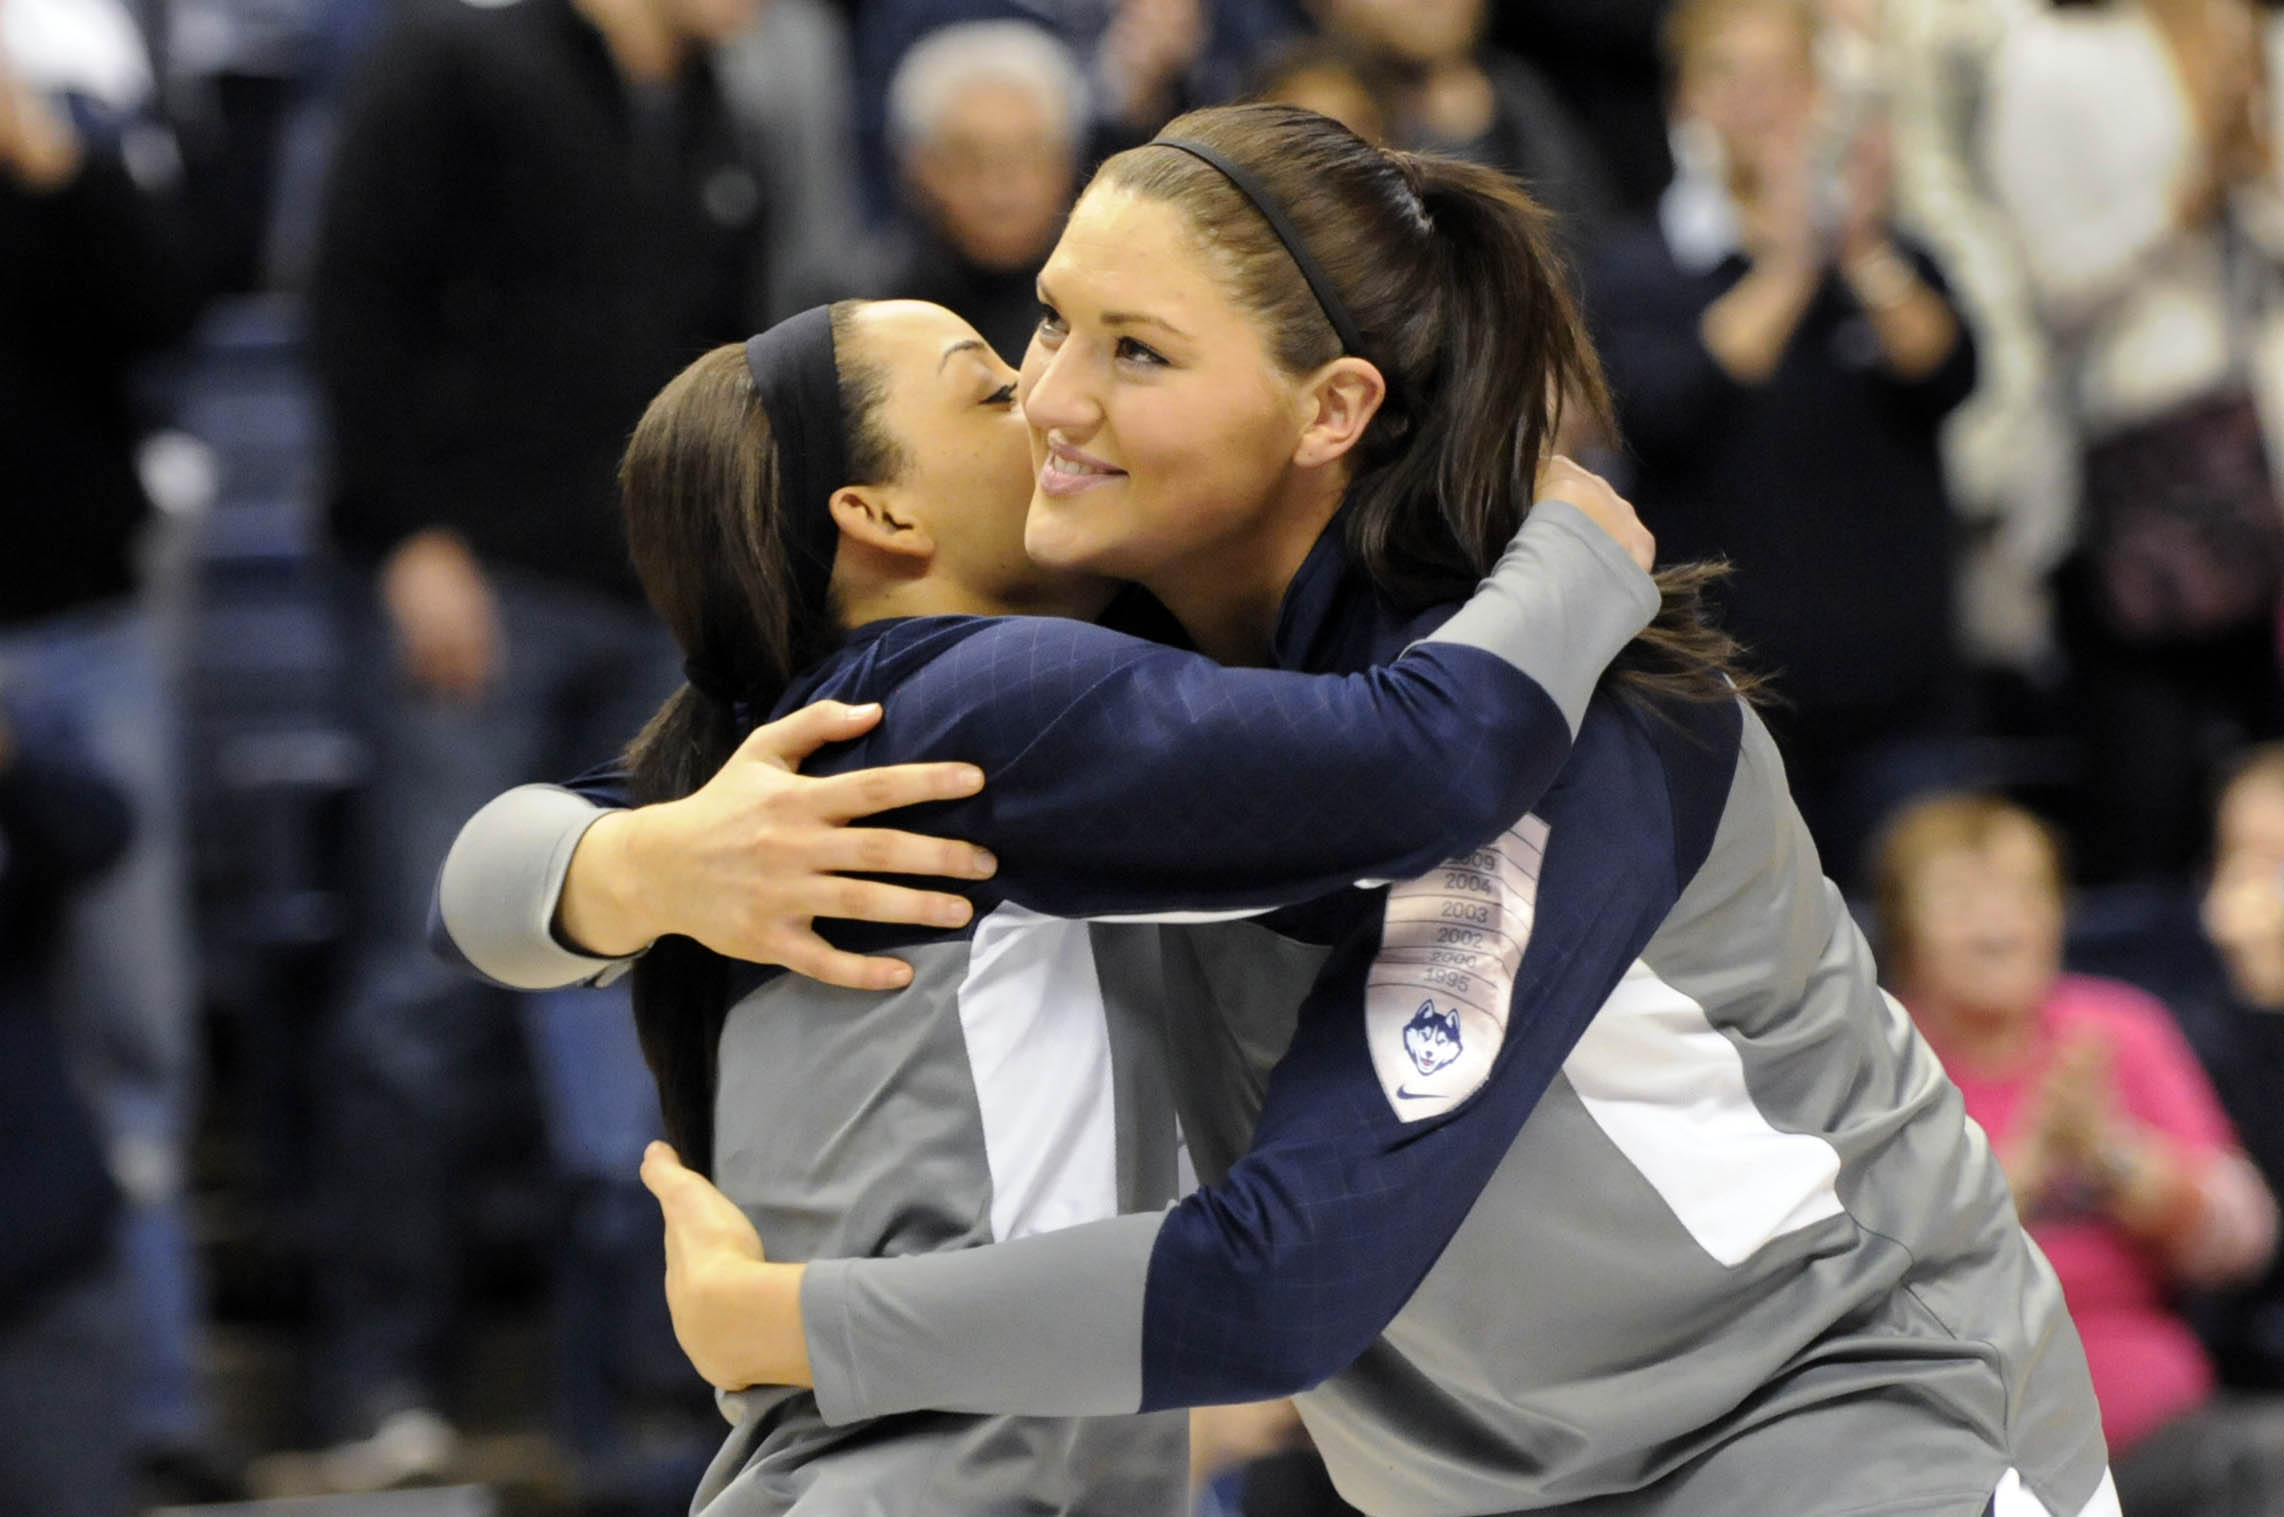 STORRS 03/01/14 UConn seniors Bria Hartley and Stefanie Dolson hug after they were honored at Senior Day ceremonies at Gampel Pavilion before their game against Rutgers Saturday. CLOE POISSON|cpoisson@courant.com